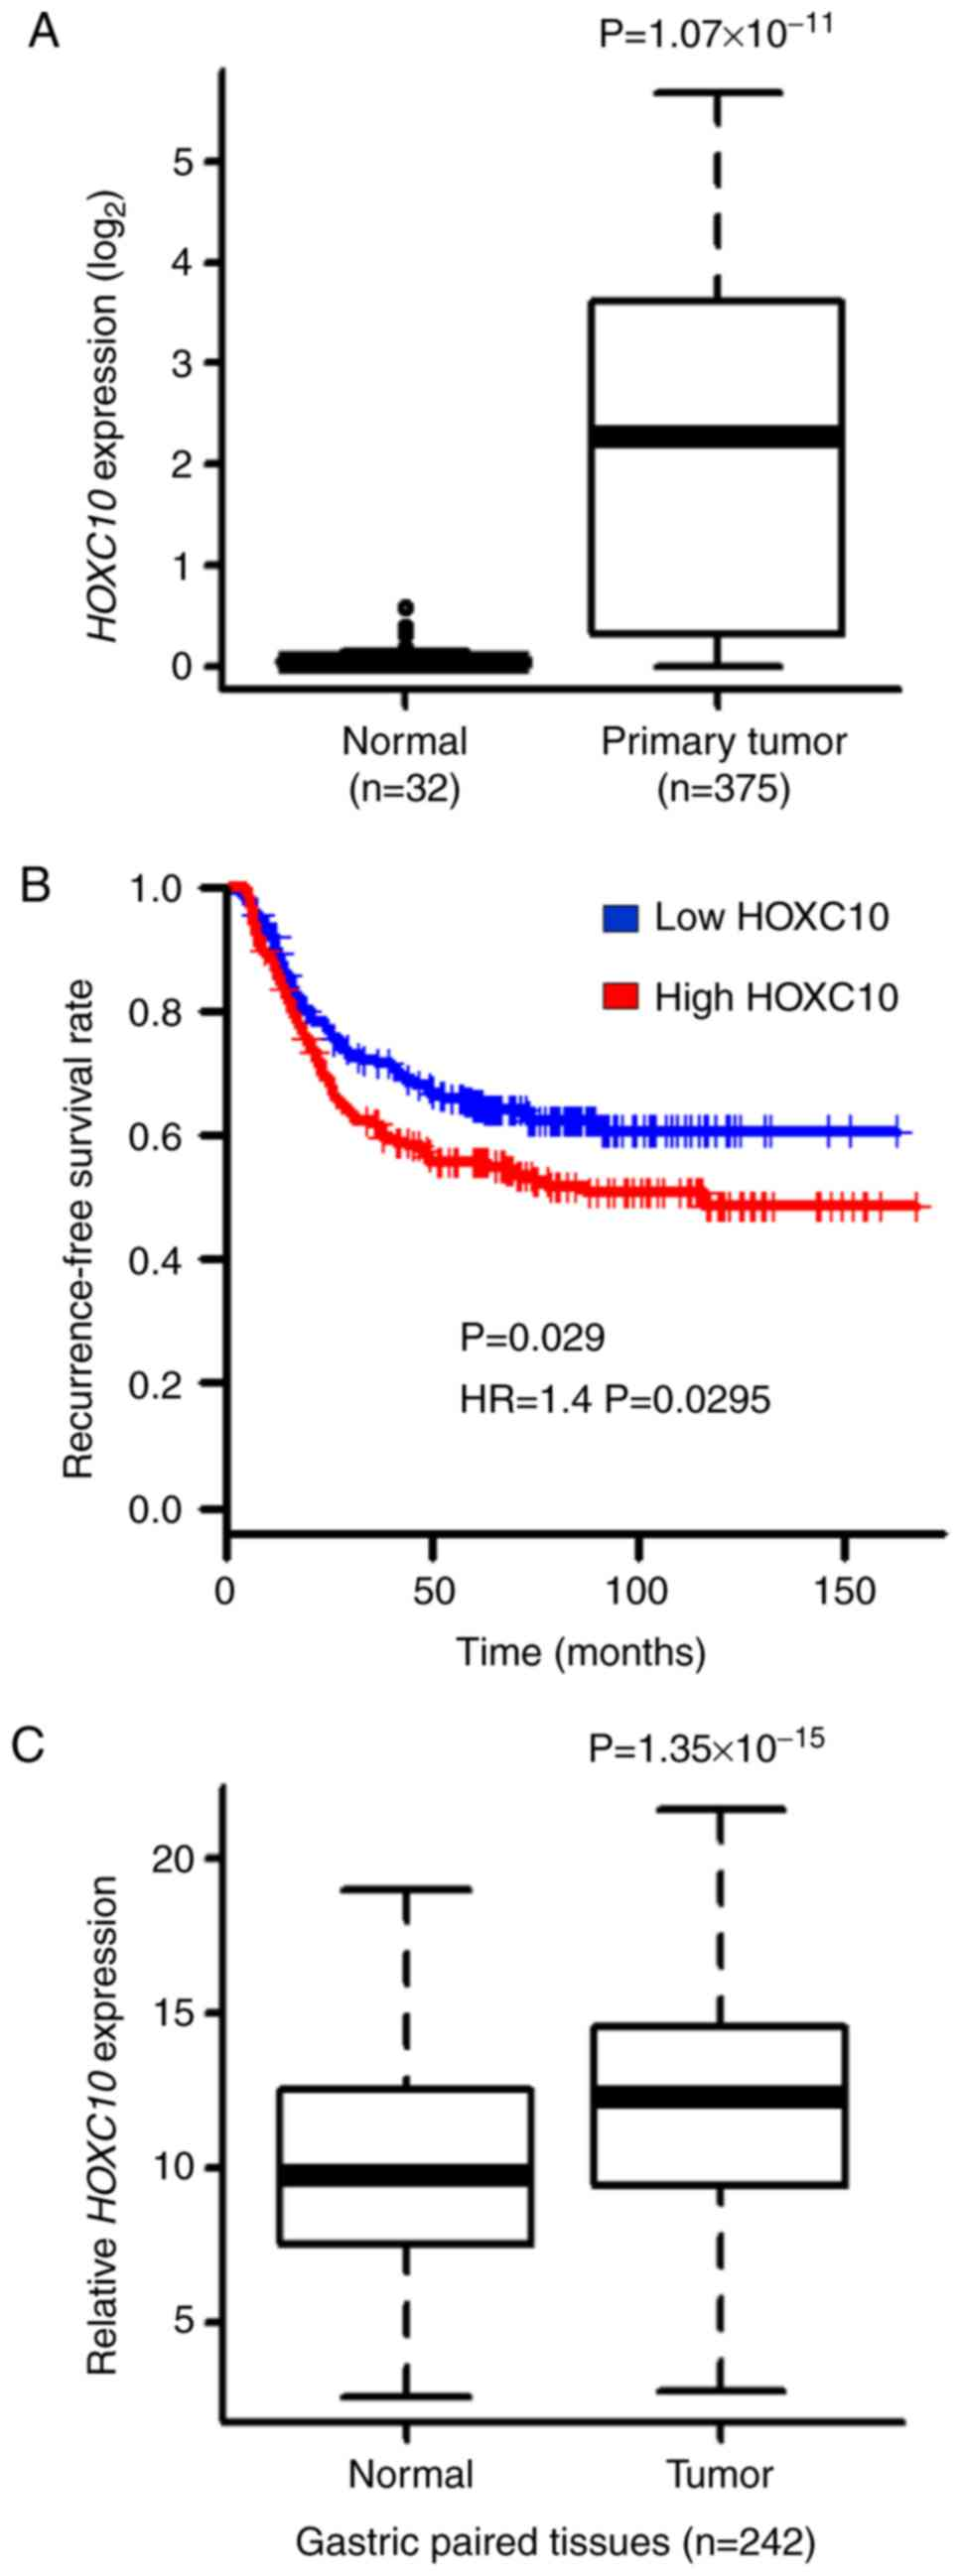 HOXC10 overexpression promotes cell proliferation and